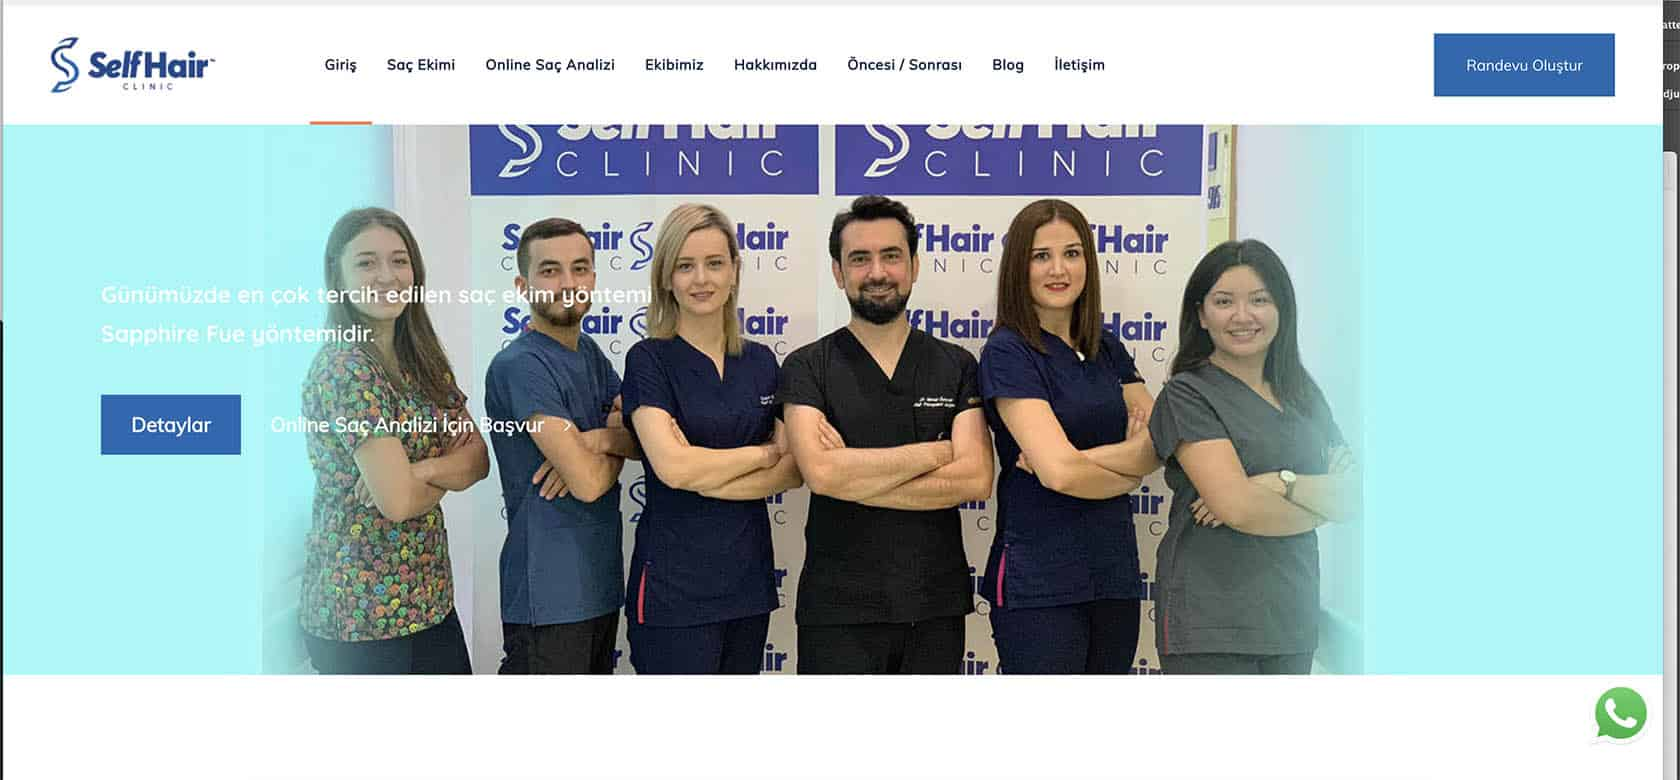 Self Hair Clinic Istanbul Turkey - Medical Tourism And Hair Transplant Surgery A Guide